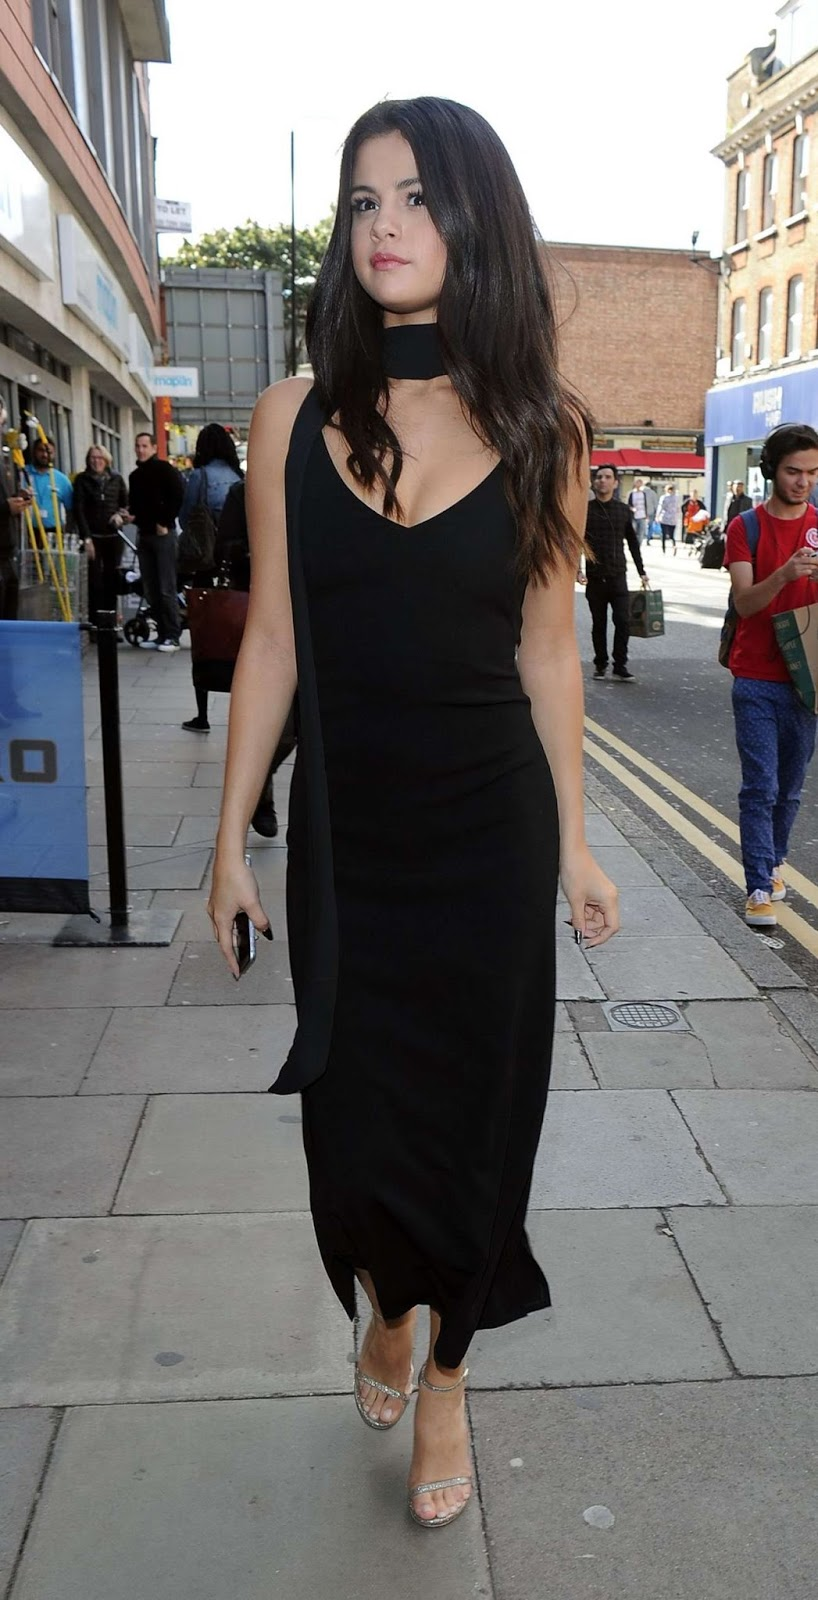 Selena Gomez struts in style in a black dress in London